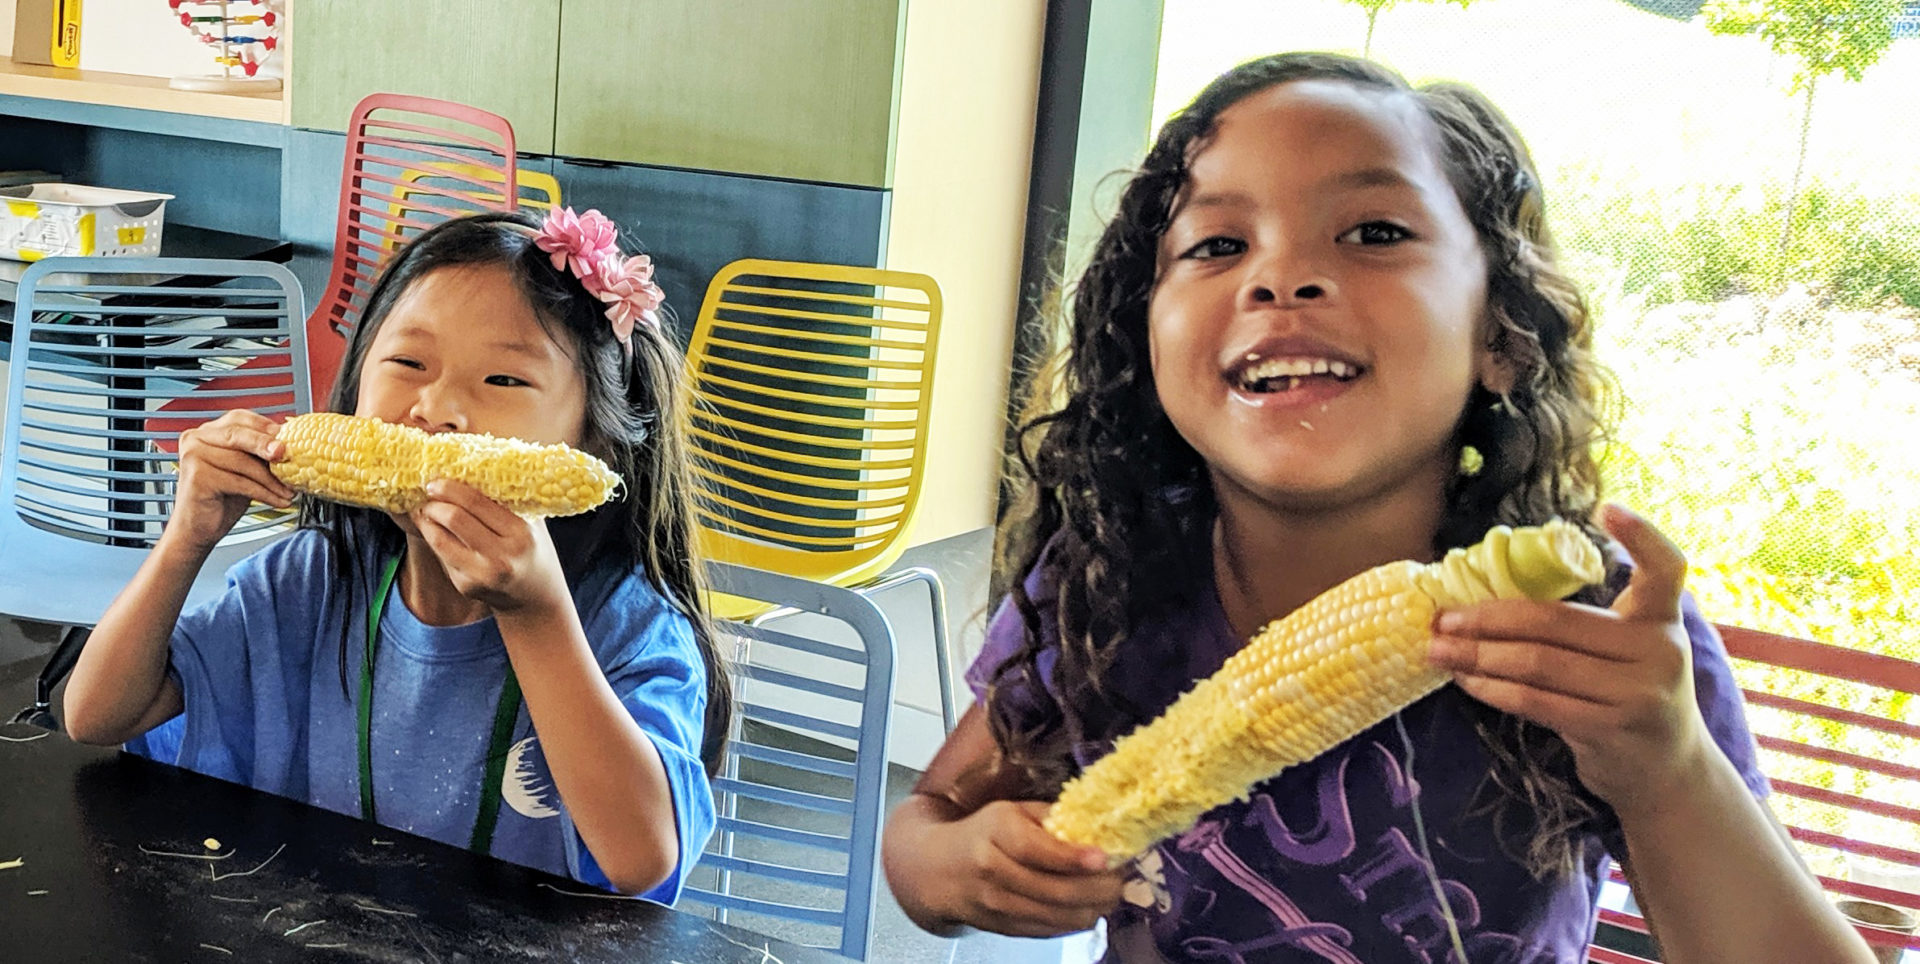 Summer campers eating corn at Farm Foodies